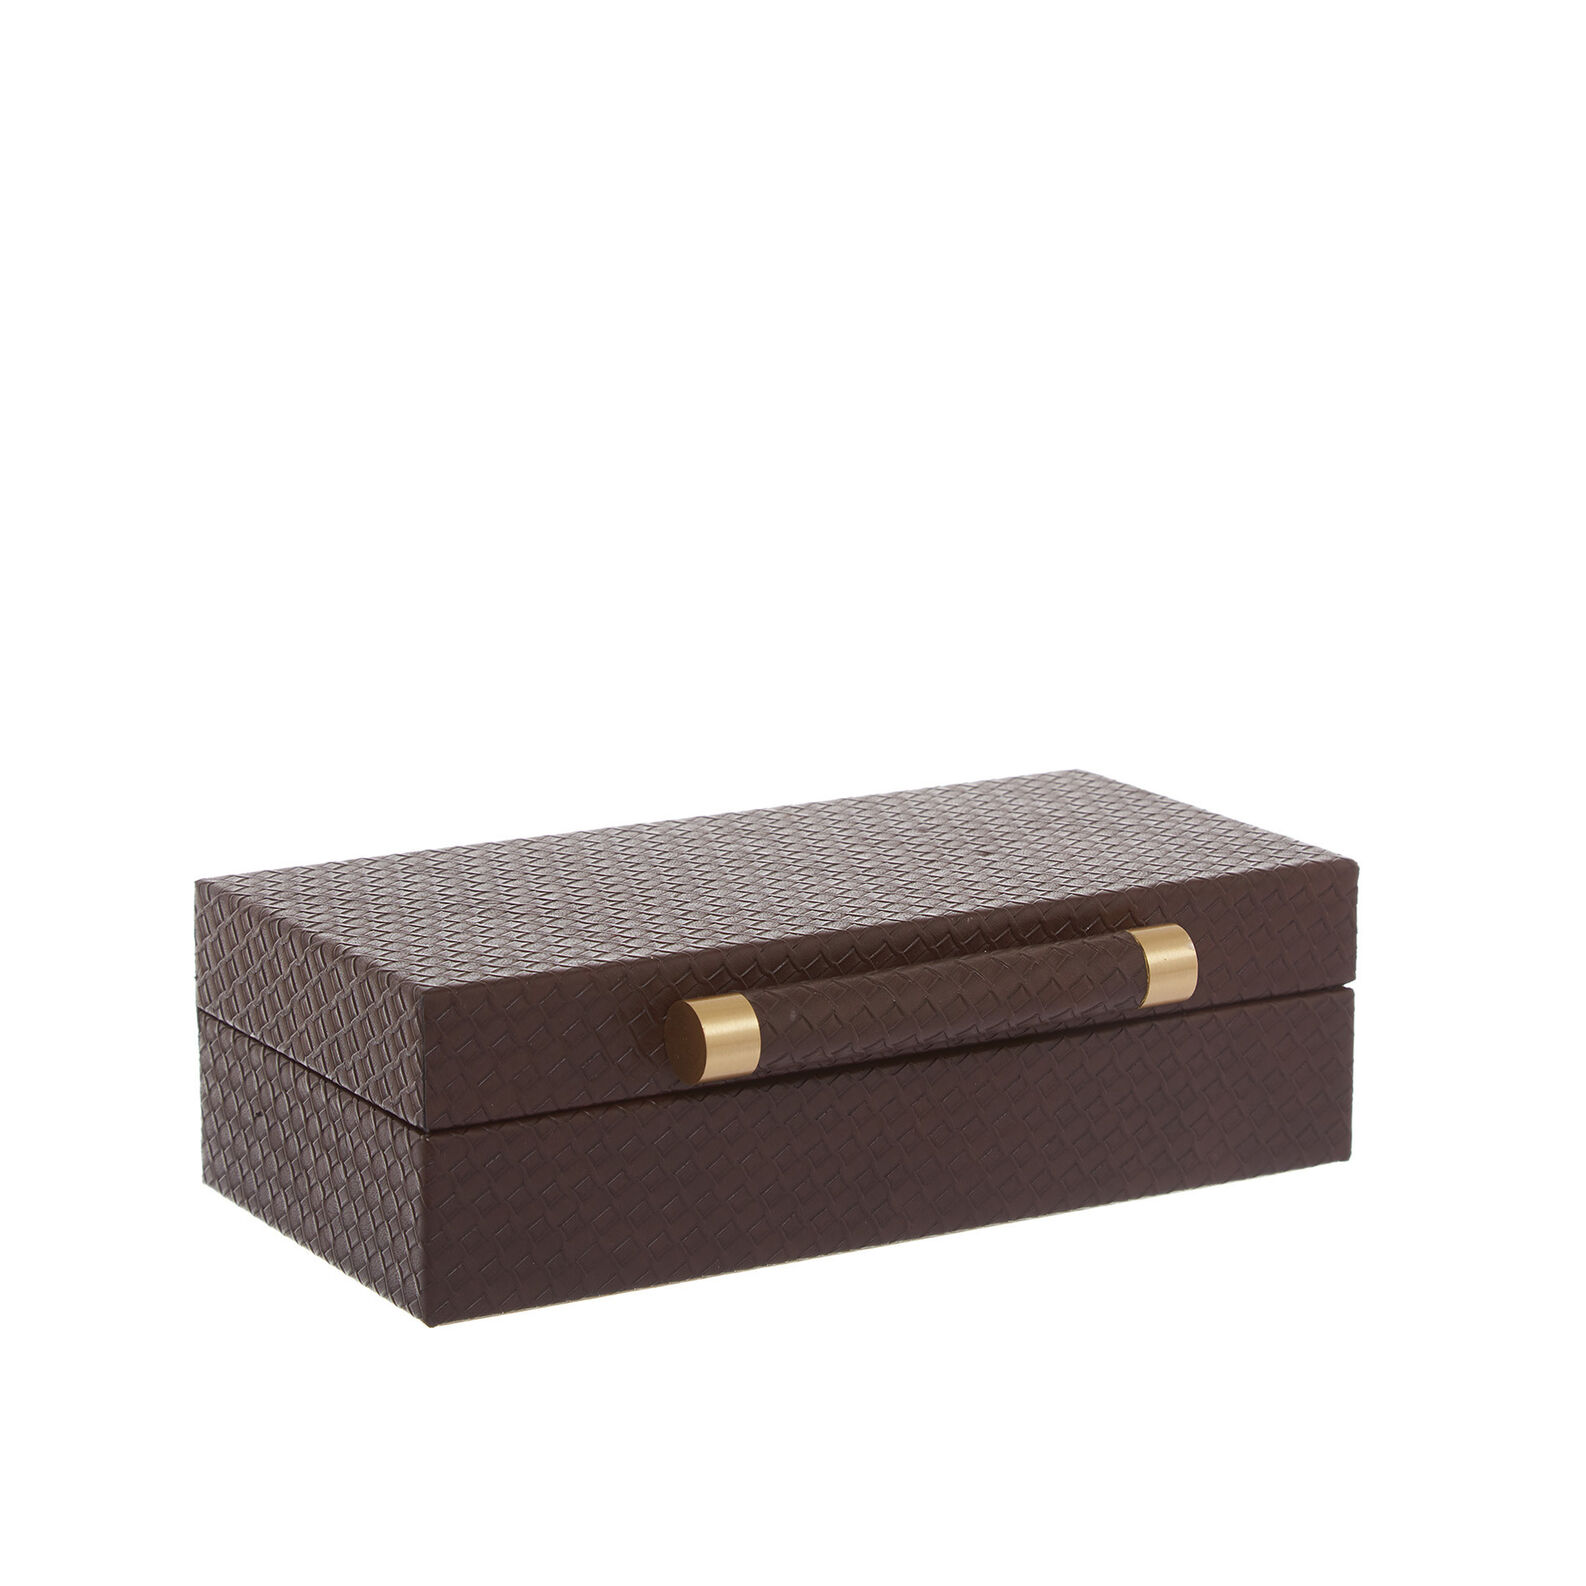 Jewelery box in synthetic material